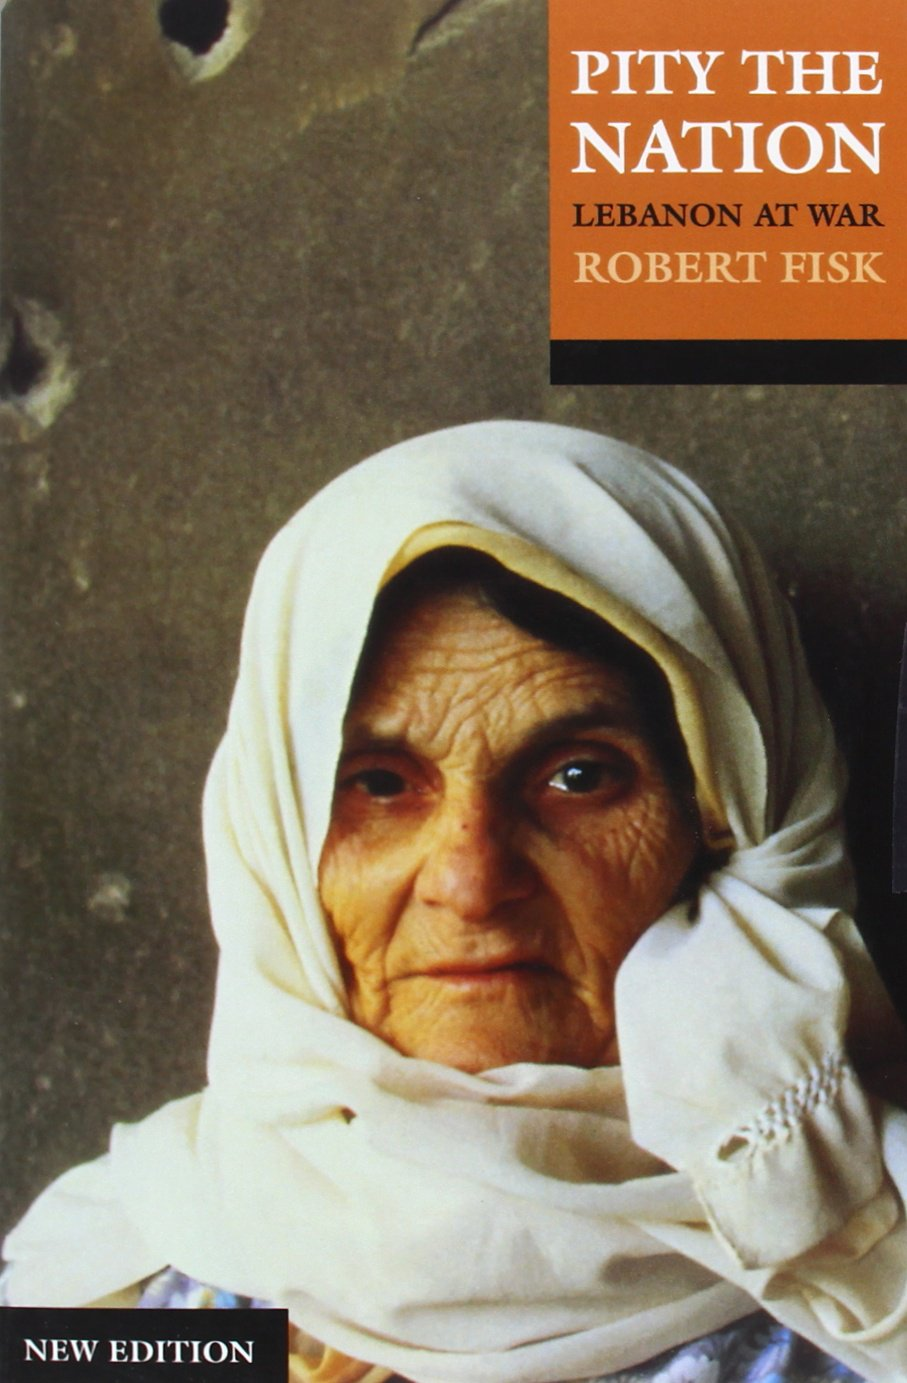 'Pity the Nation', Robert Fisk's award-winning book on the war in Lebanon